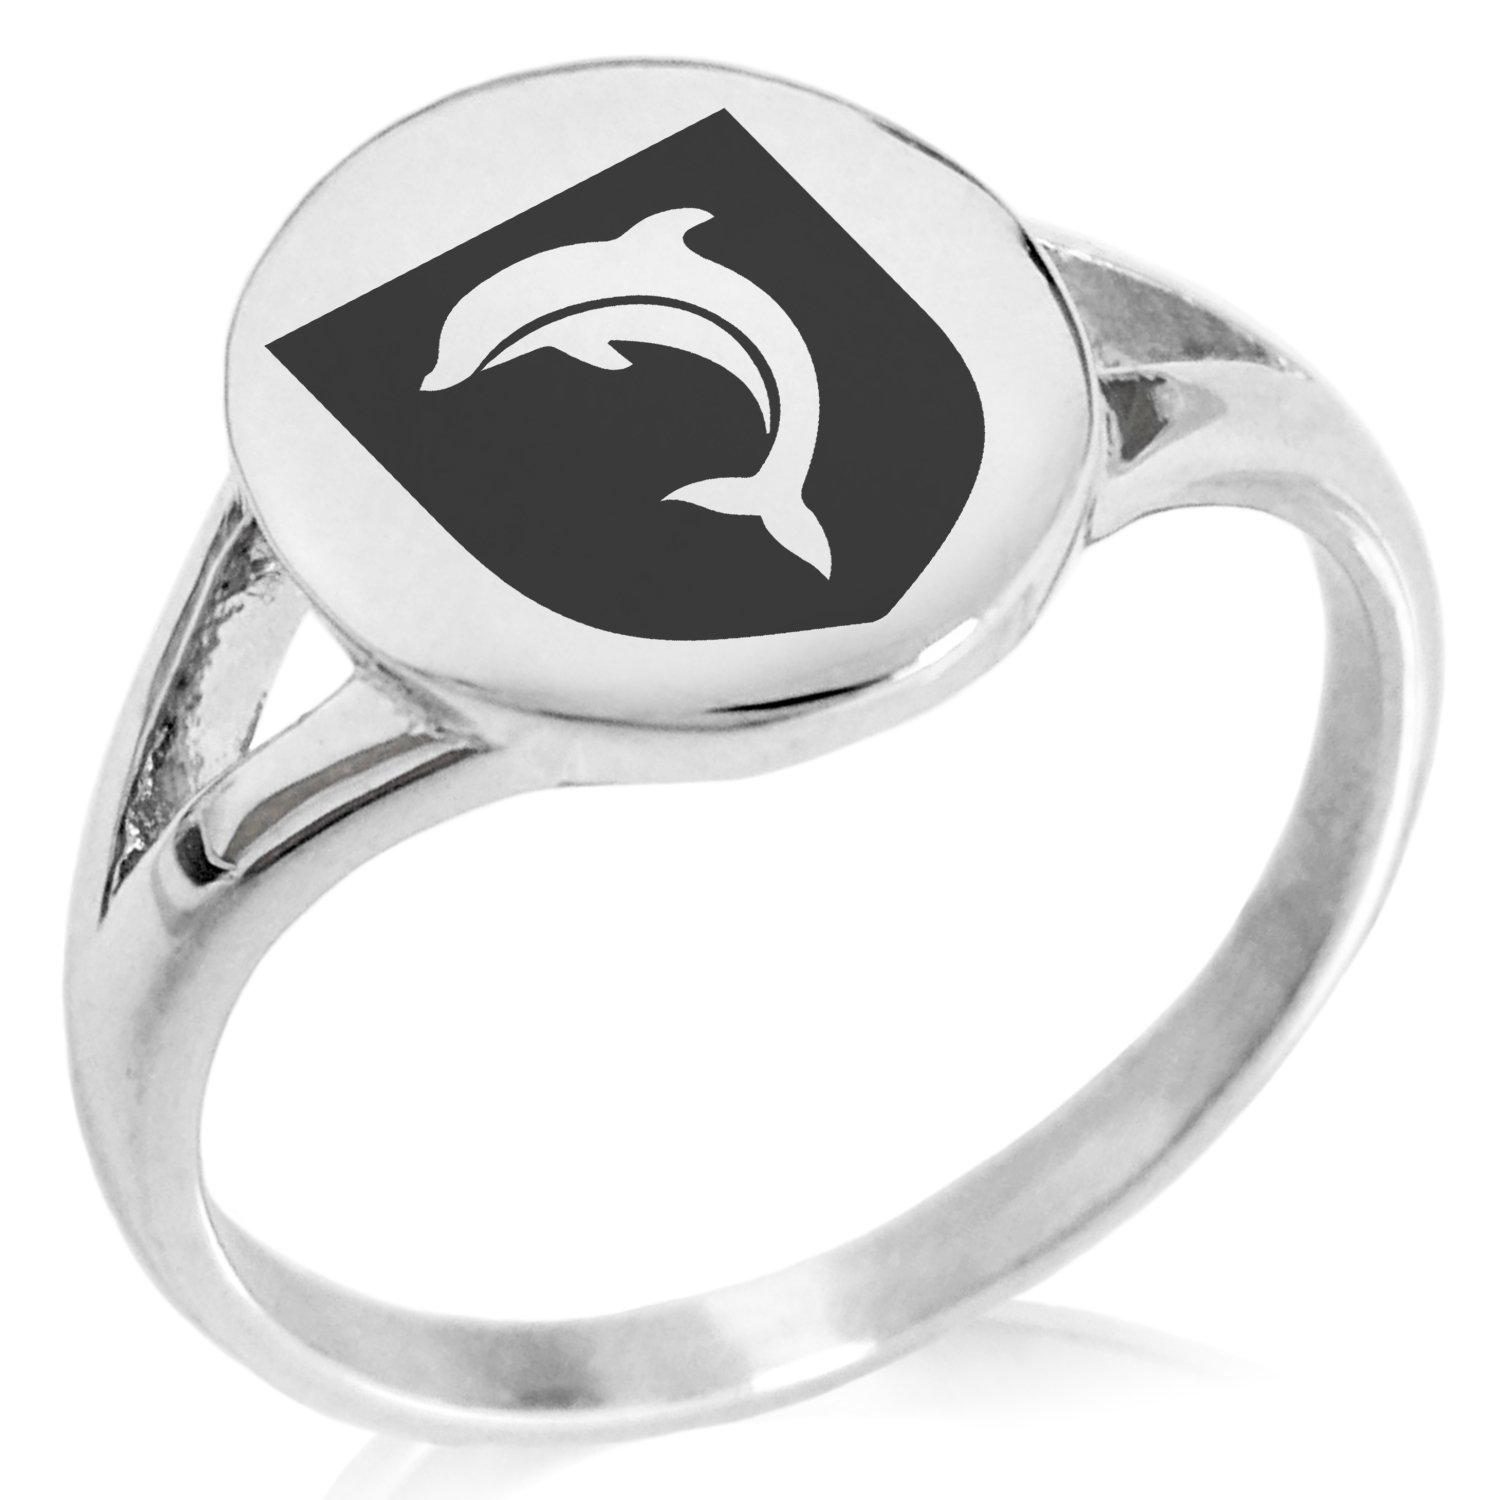 Tioneer Stainless Steel Dolphin Diligence Coat of Arms Shield Symbol Minimalist Oval Top Polished Statement Ring, Size 7